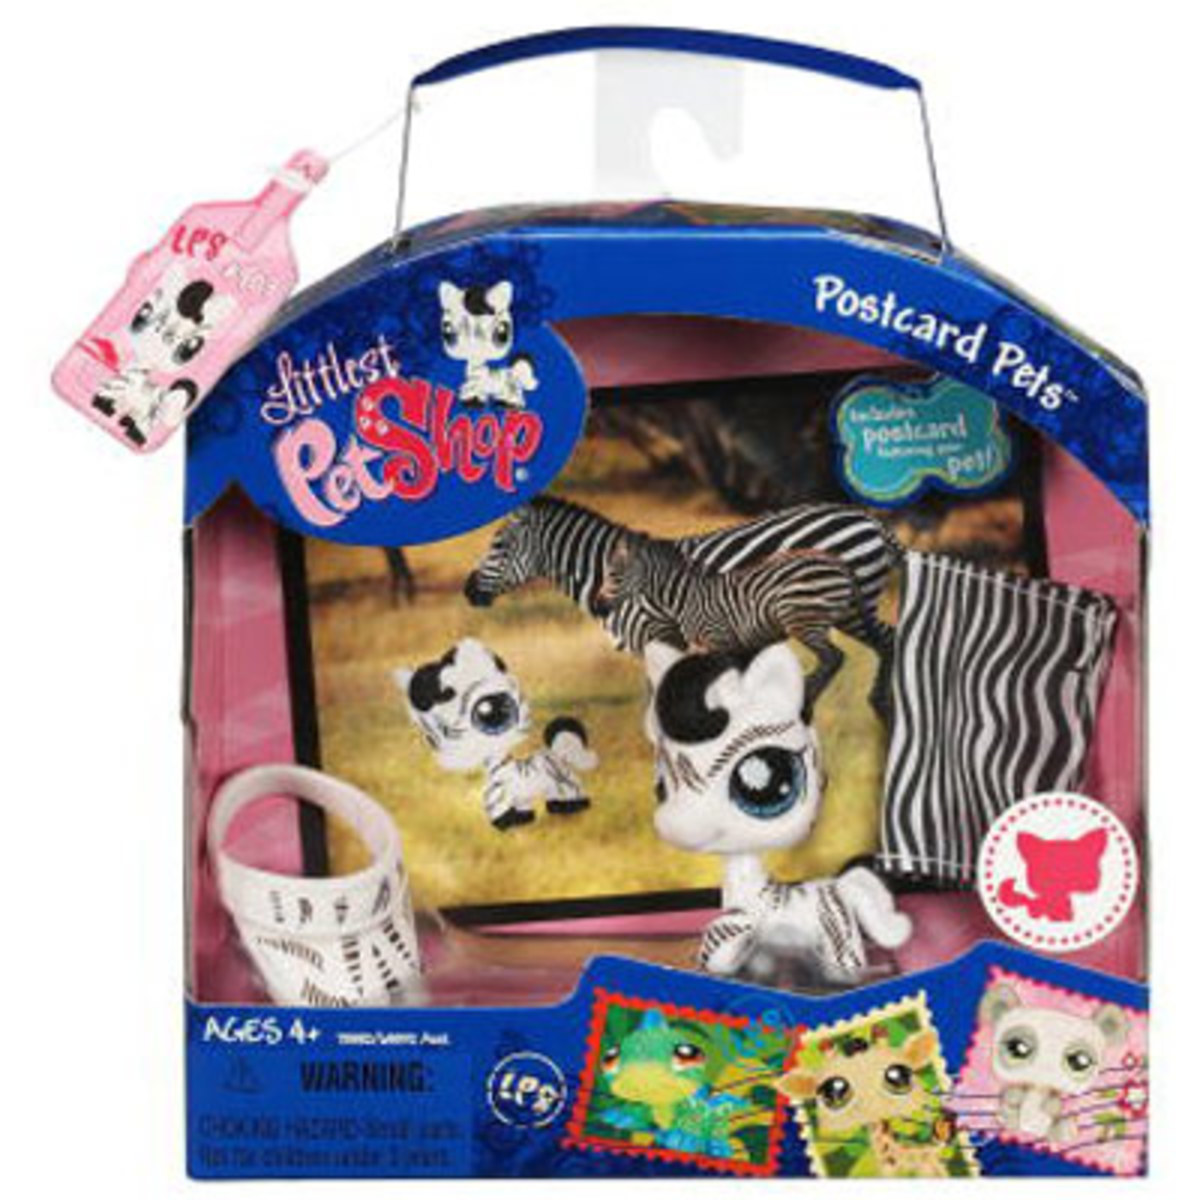 My Littlest Petshop Postcard Pets Zebra figurine is a popular collectible pet in the LPS line by Hasbro. Product images from Hasbro.com